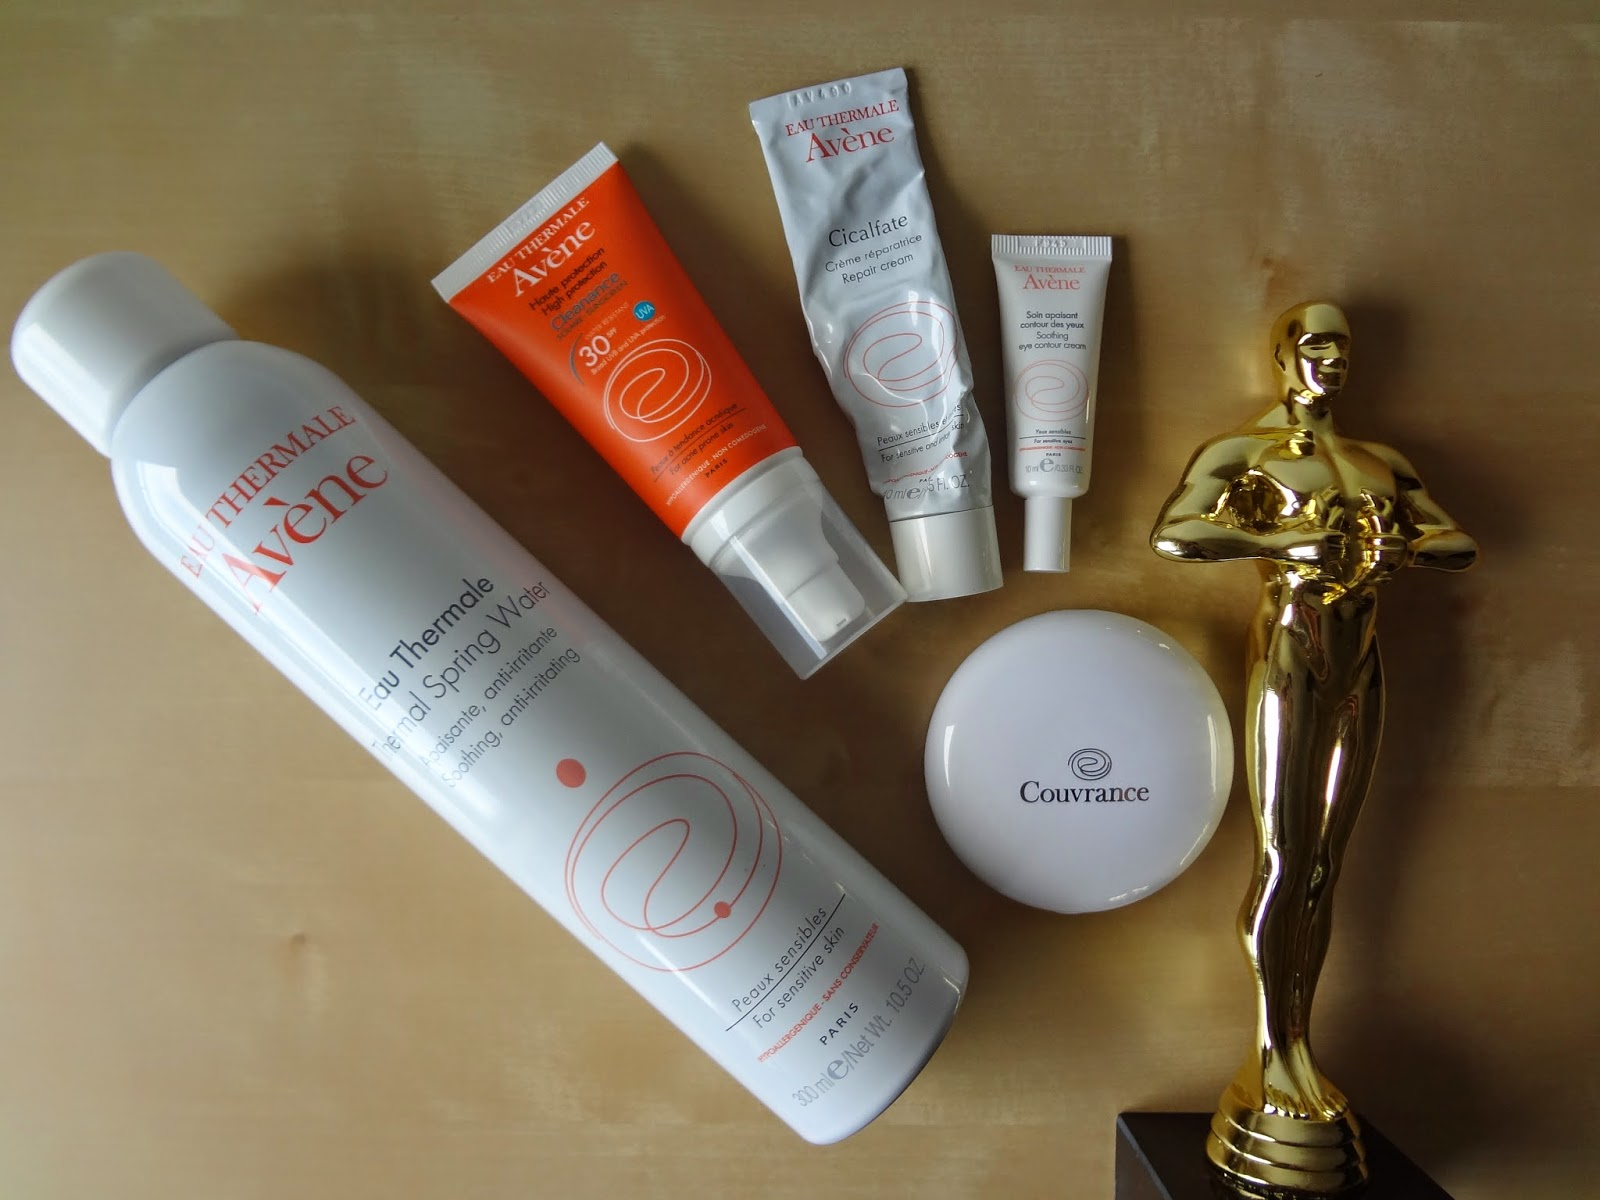 beauty-revue-review-beaute-oscars-favoris-avene-heroes-eau-thermale-cleanance-solaire-couvrance-compact-oil-free-cicalfate-creme-soin-contour-yeux-hydratant-apaisant-skincare